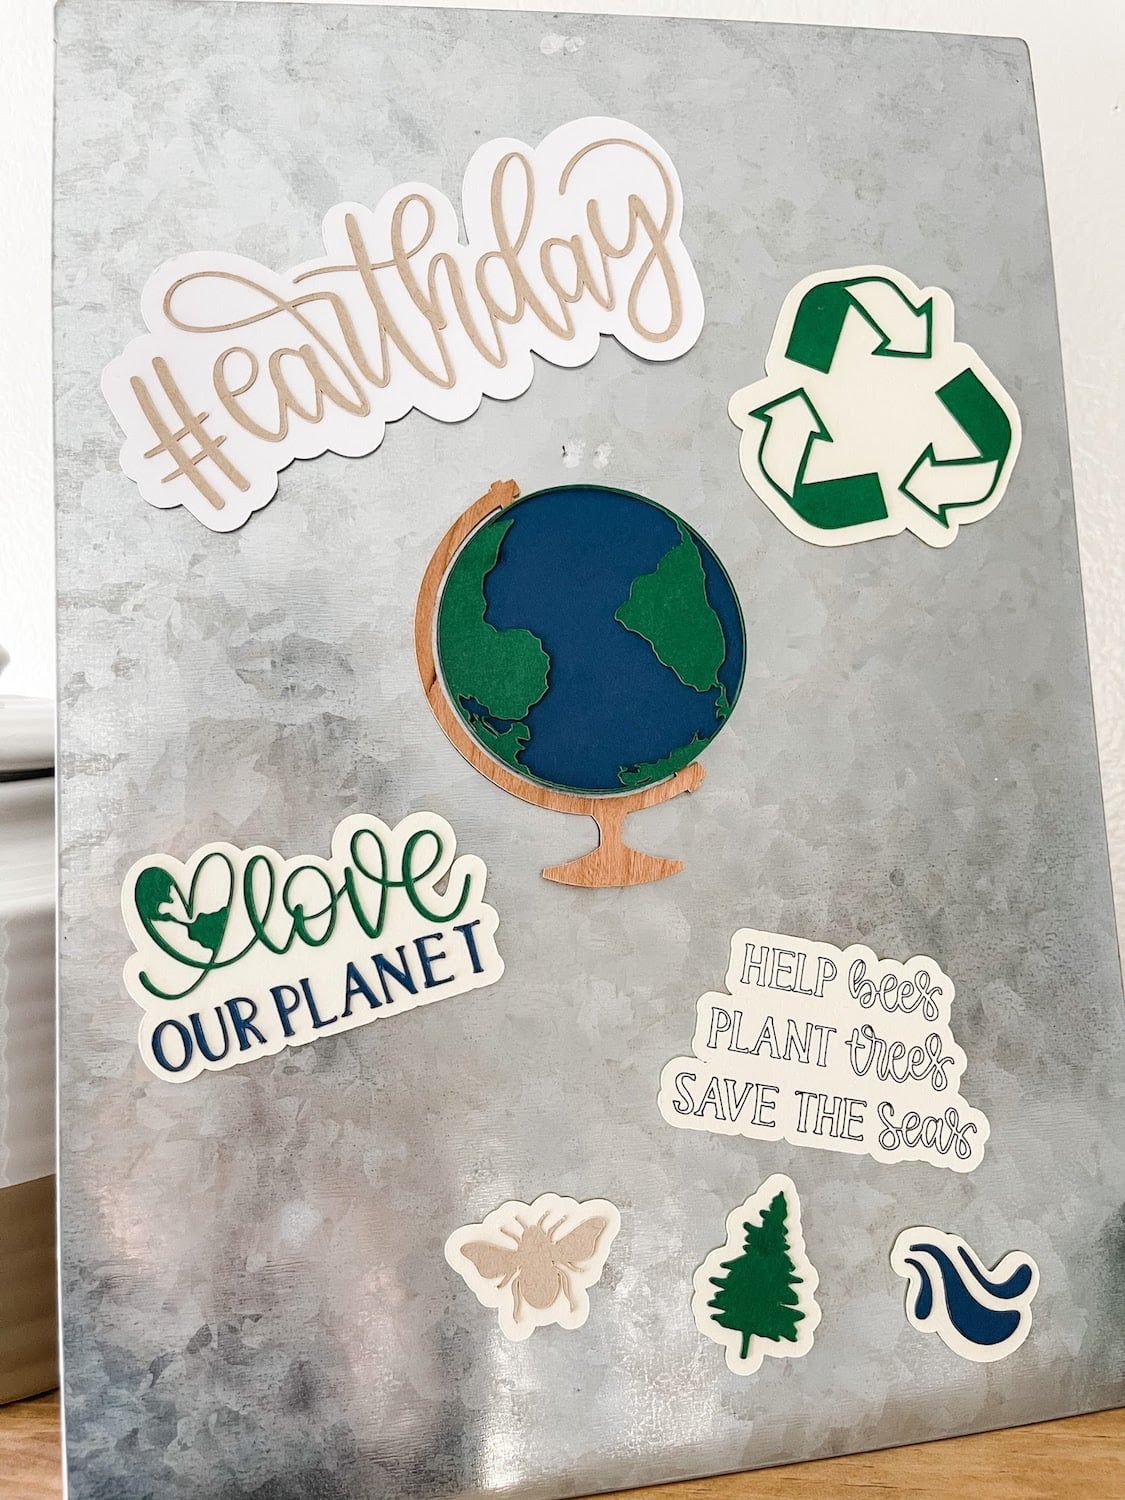 Finished earth day magnets on a metal board